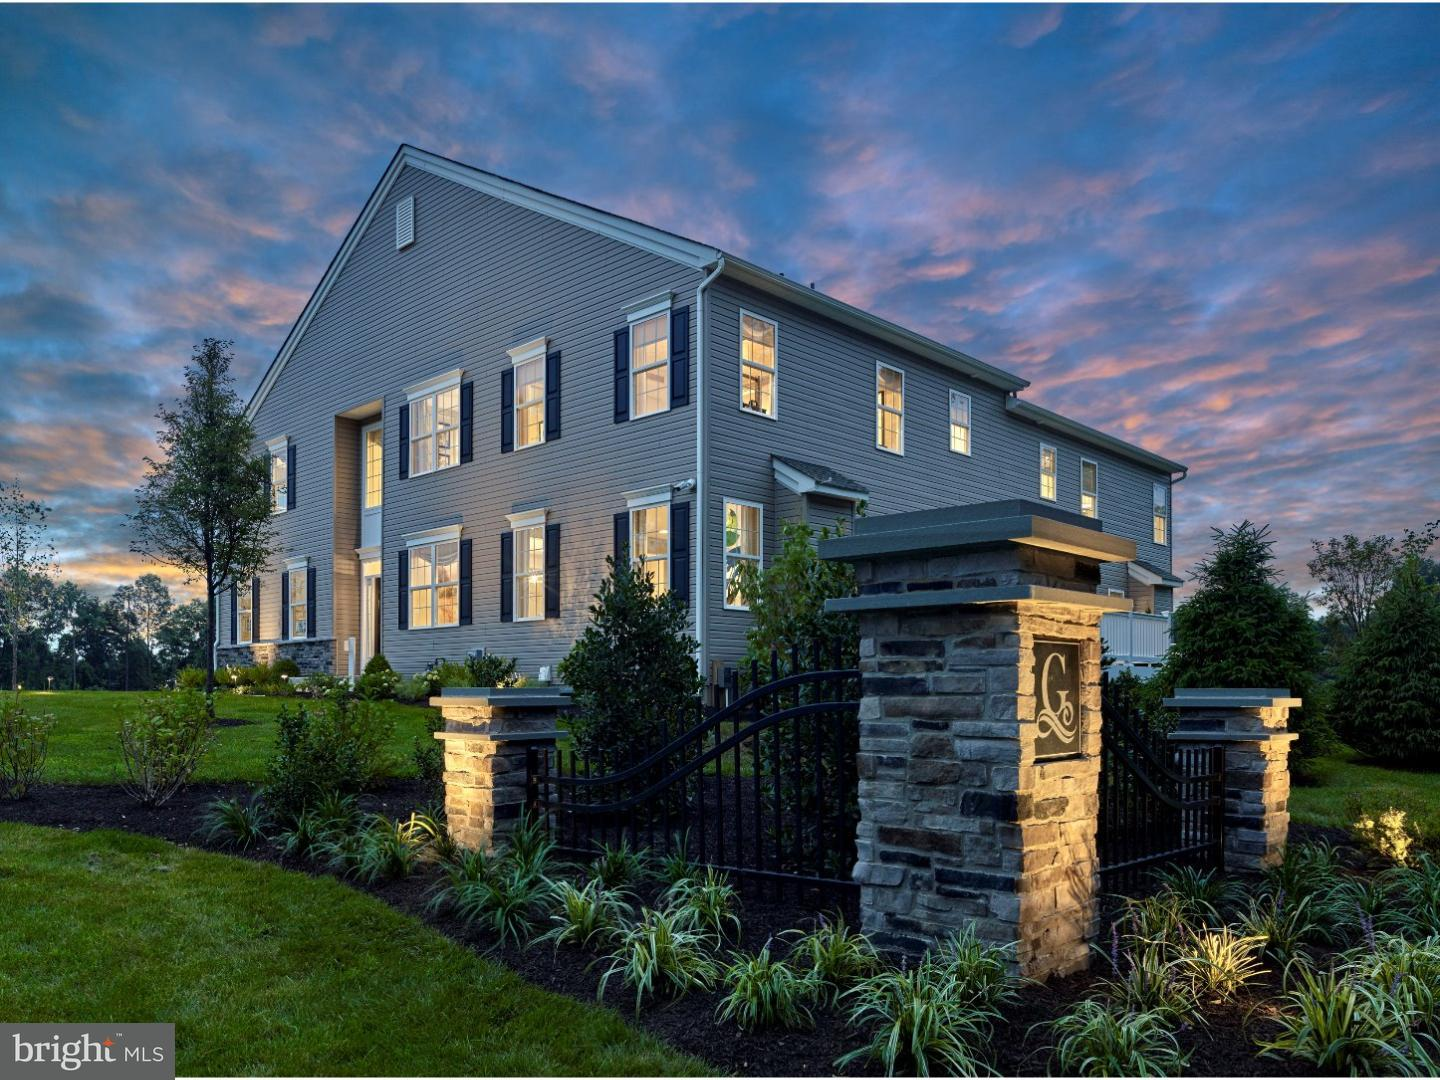 1448 Dunwoody Drive West Chester, PA 19380